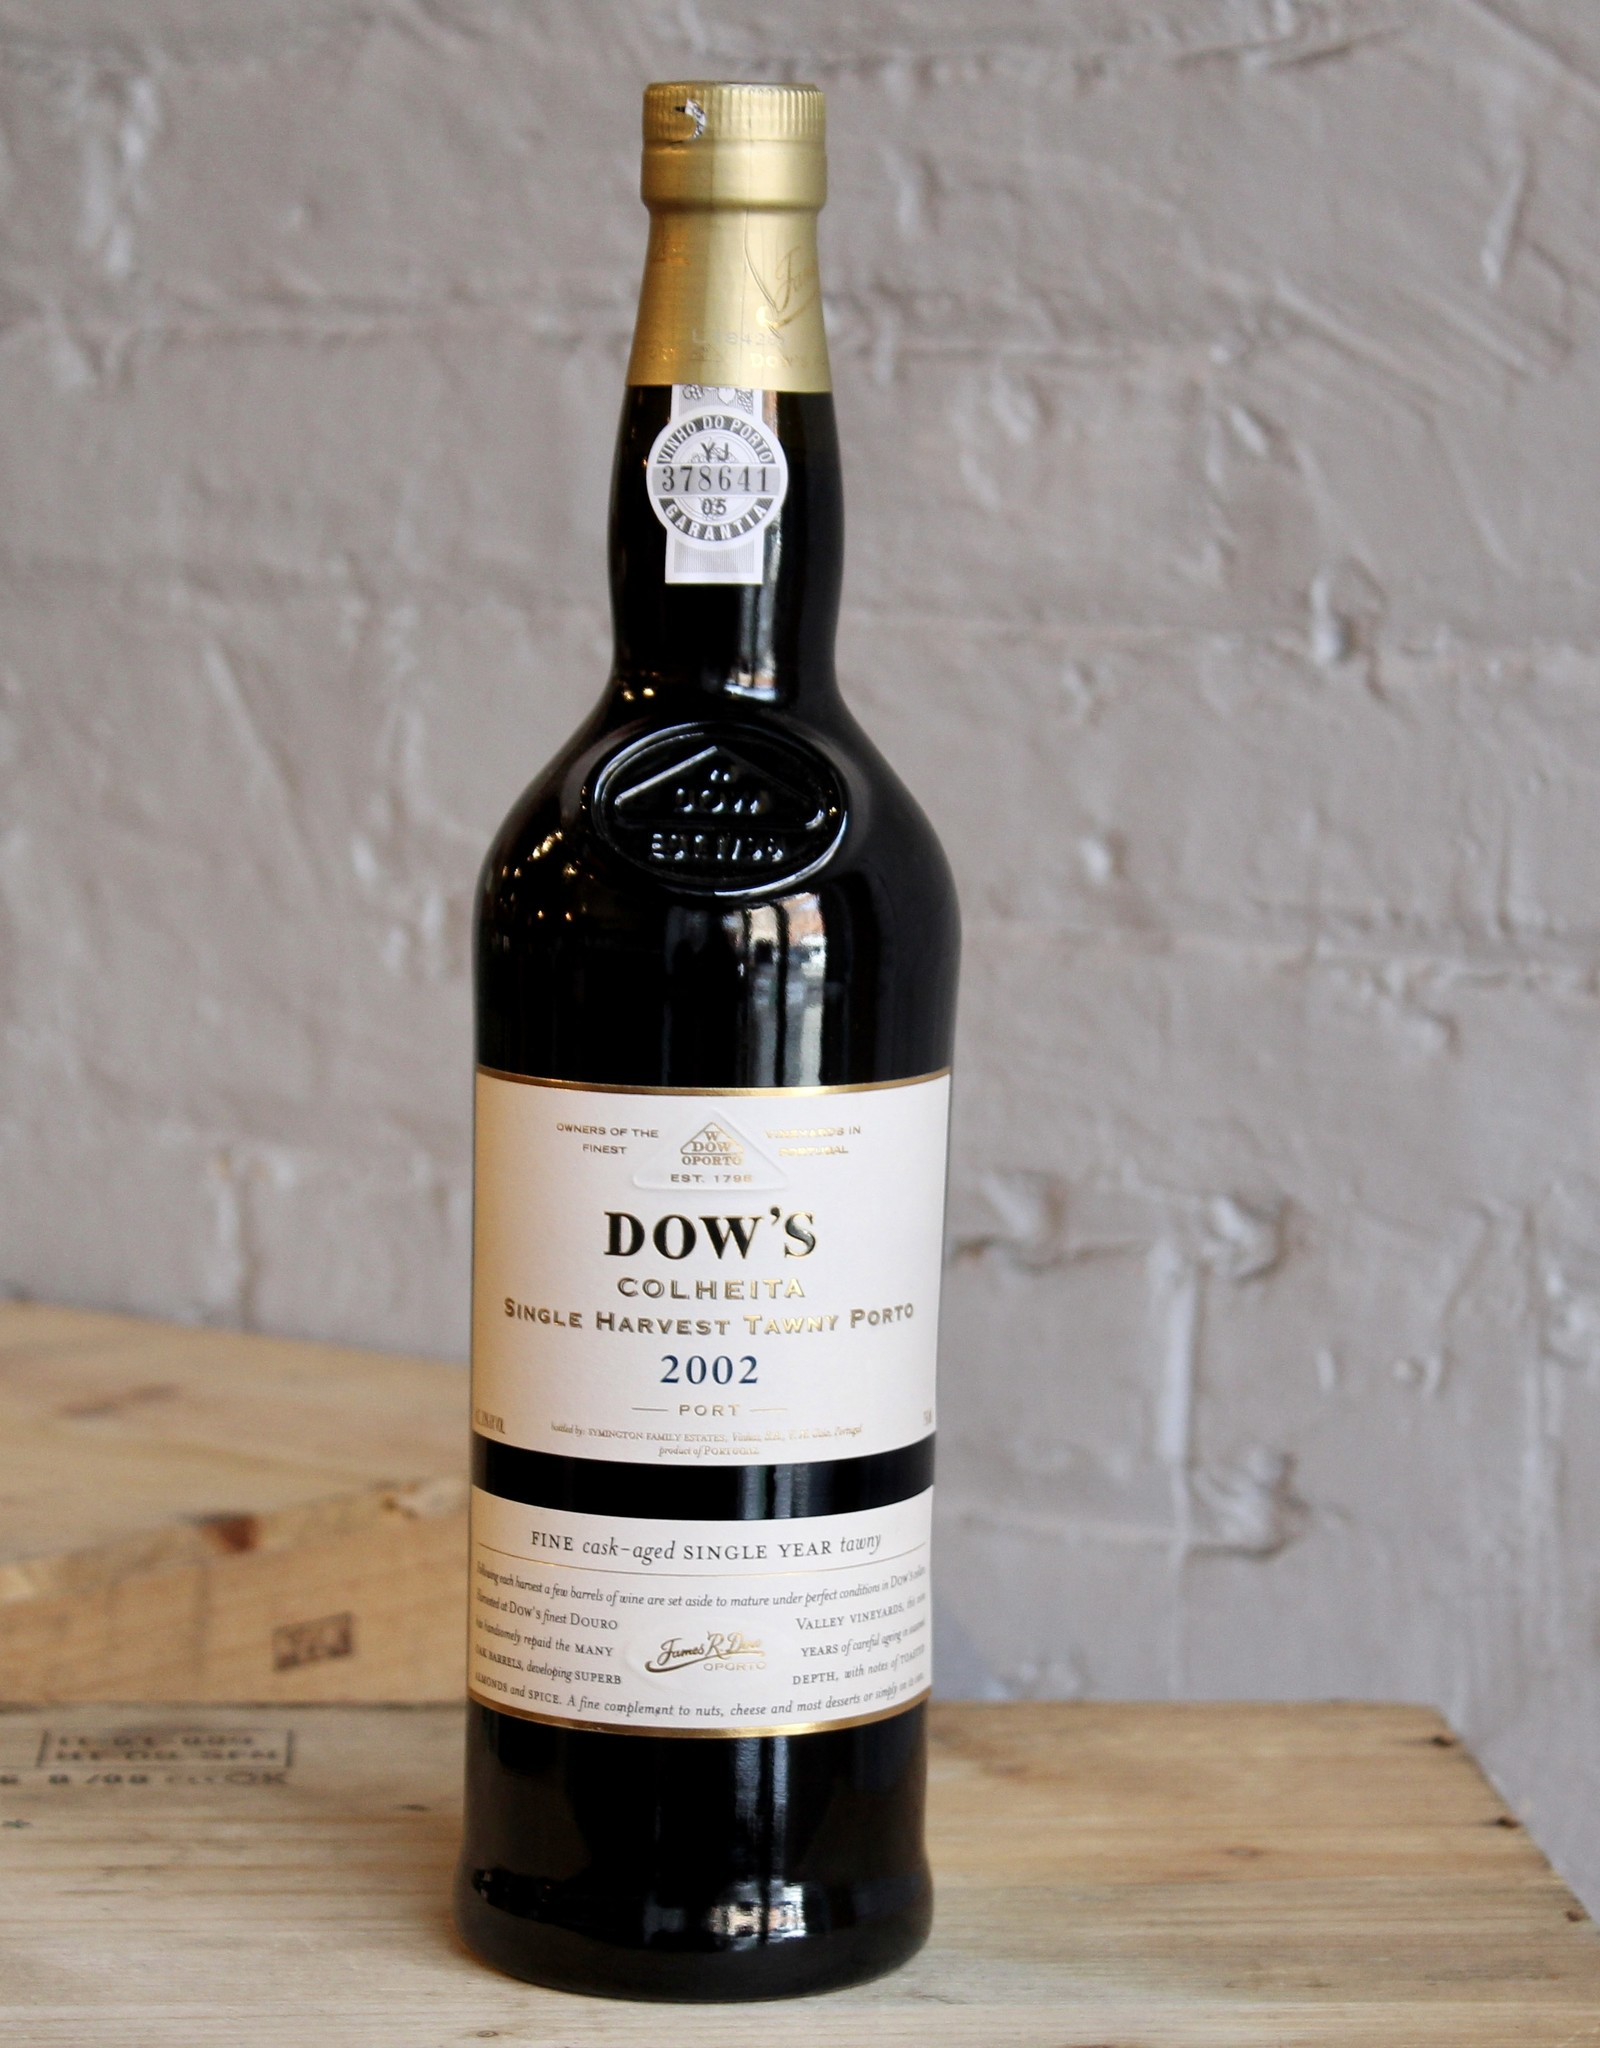 Wine 2002 Dow's Colheita Tawny Port - Douro, Portugal (750ml)